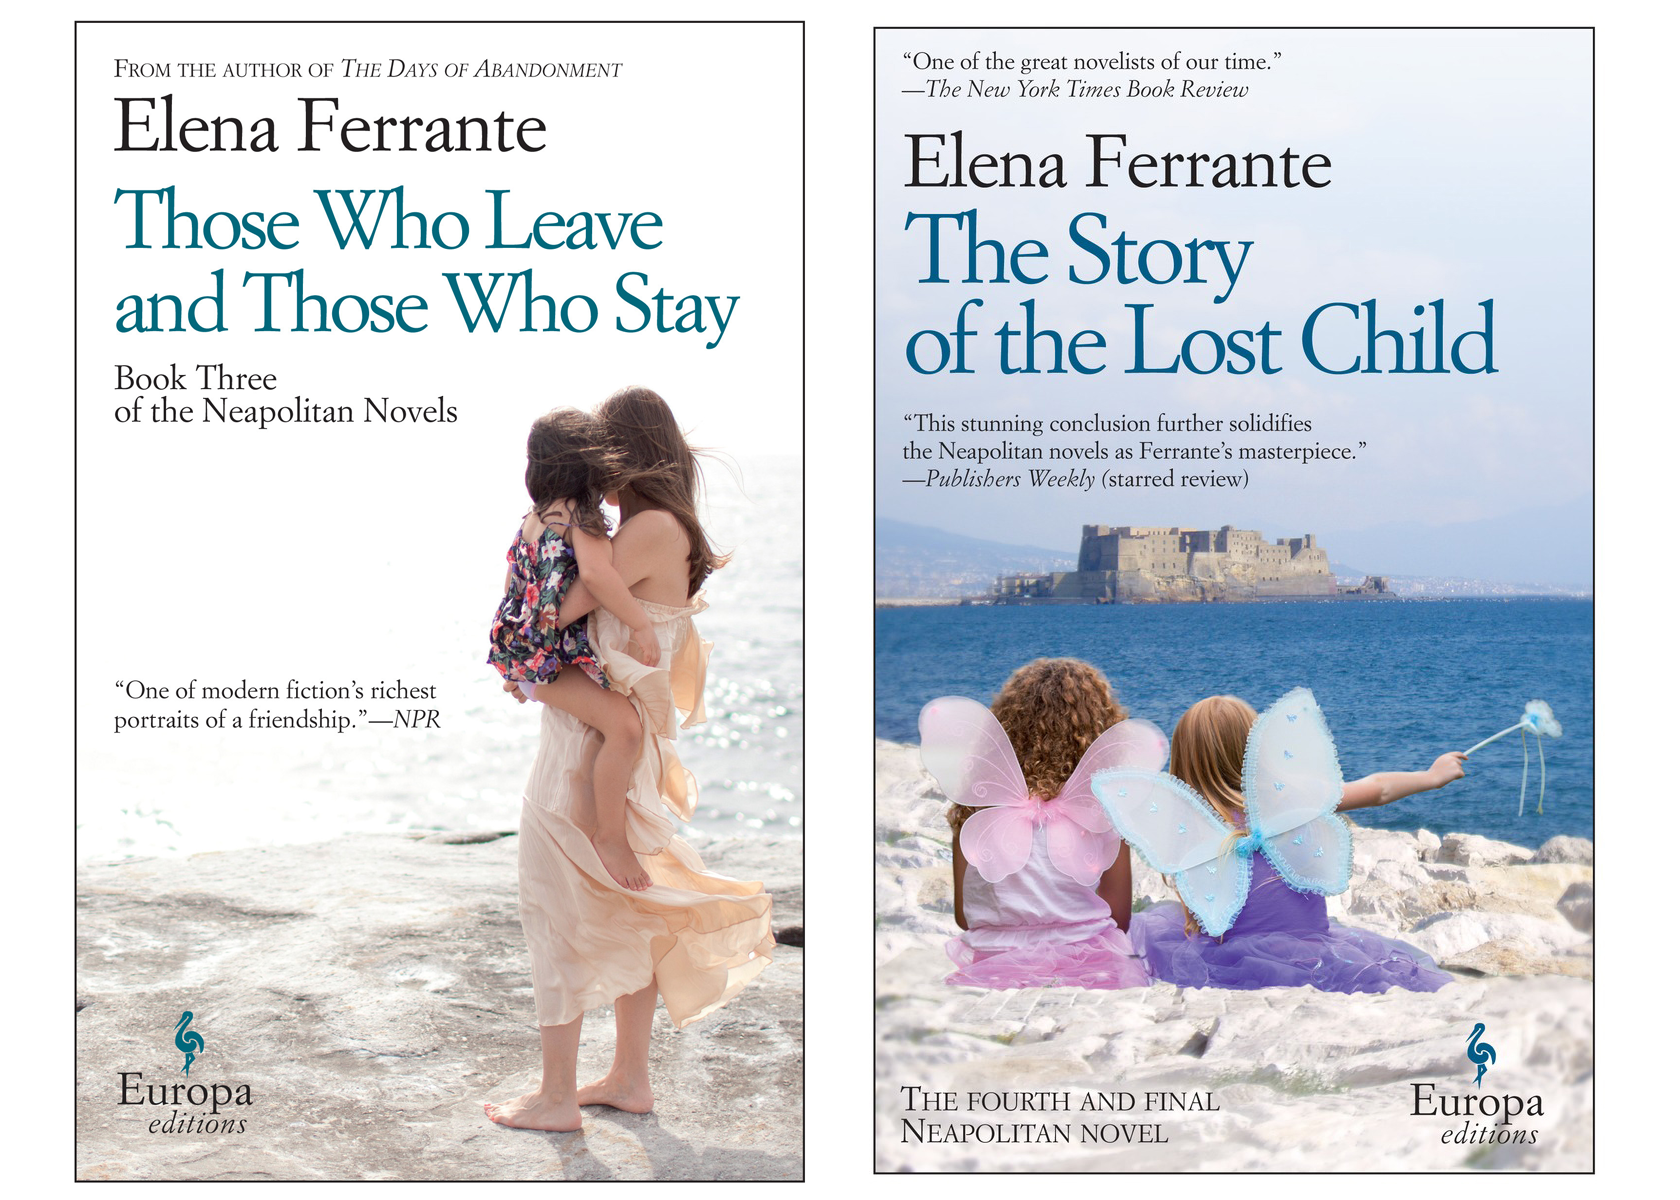 The final two books in Elena Ferrante's Neapolitan series